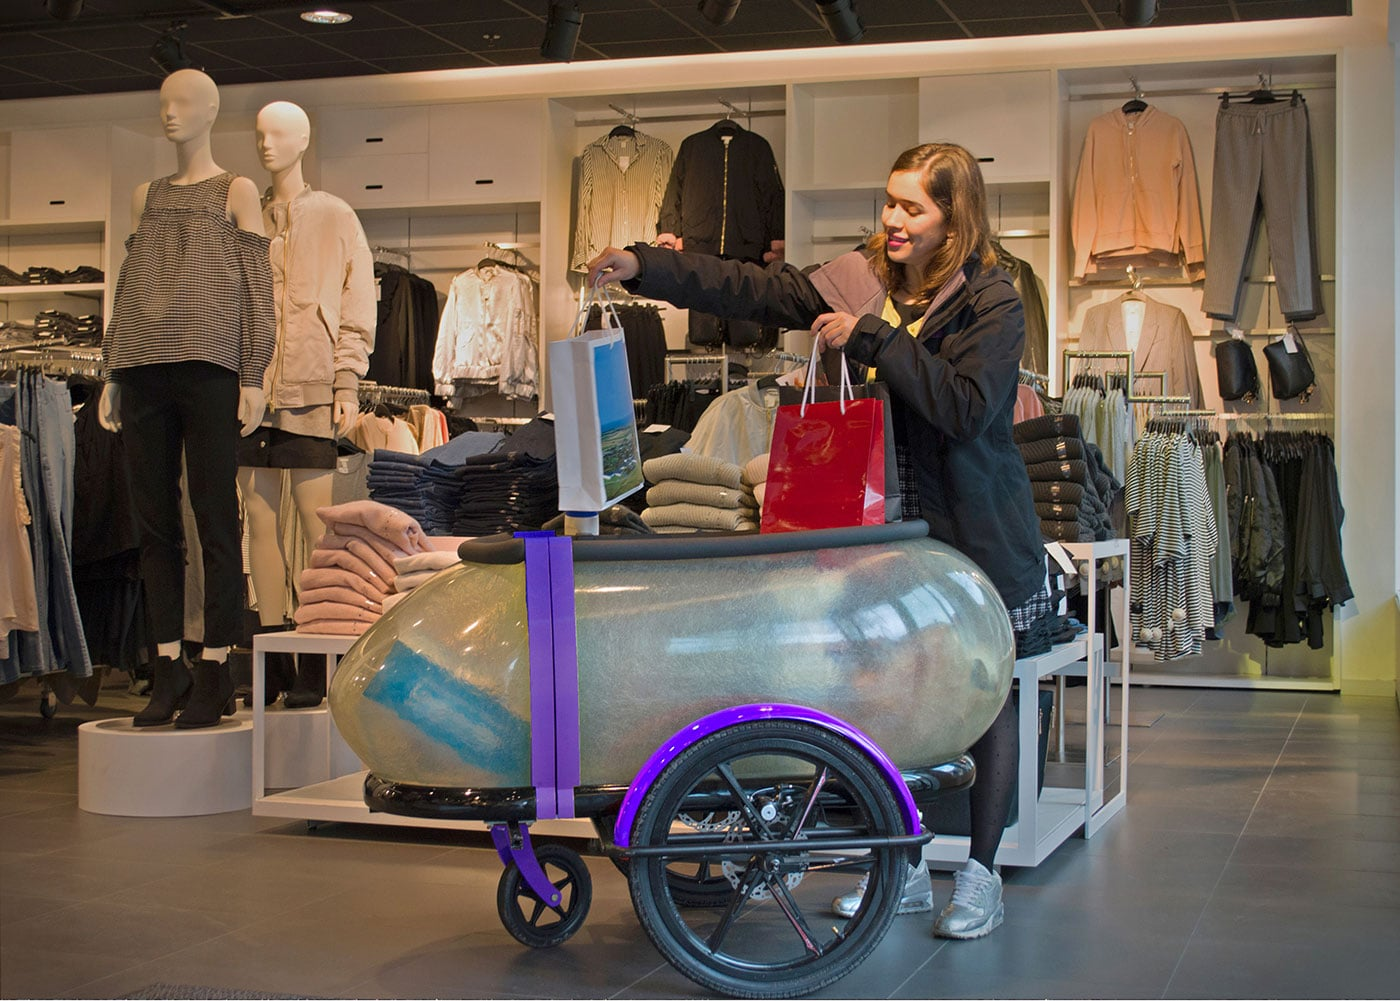 SideBuddy-Shopping-Stroller-By-Jordi-Hans-Design-Jonkoping-sweden-Cargo-Trailer,-side-trailer,-bike-trailer